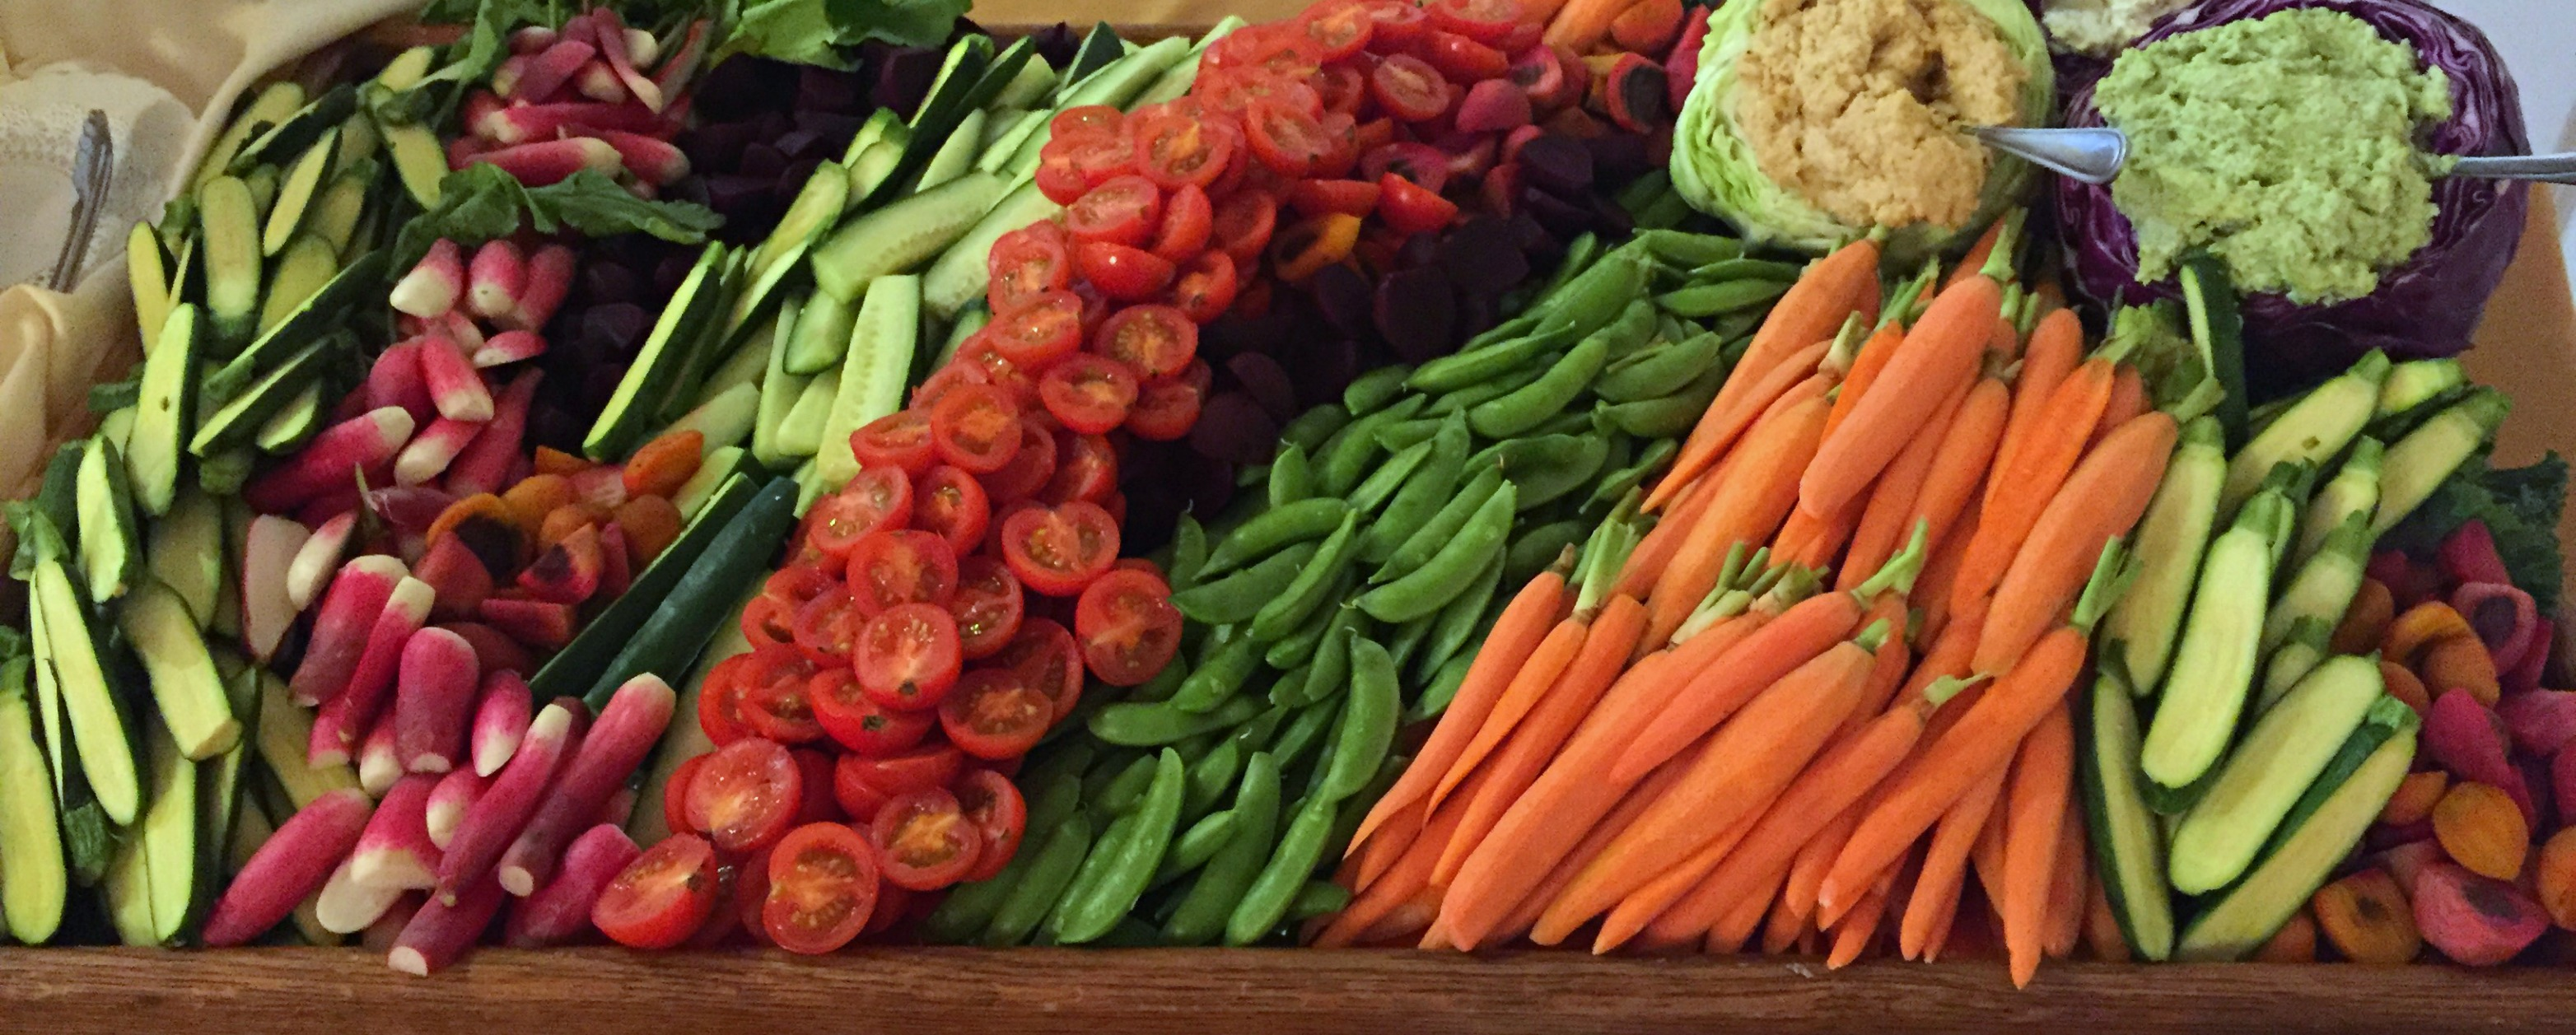 Vegan Ultimate Vegetable Display